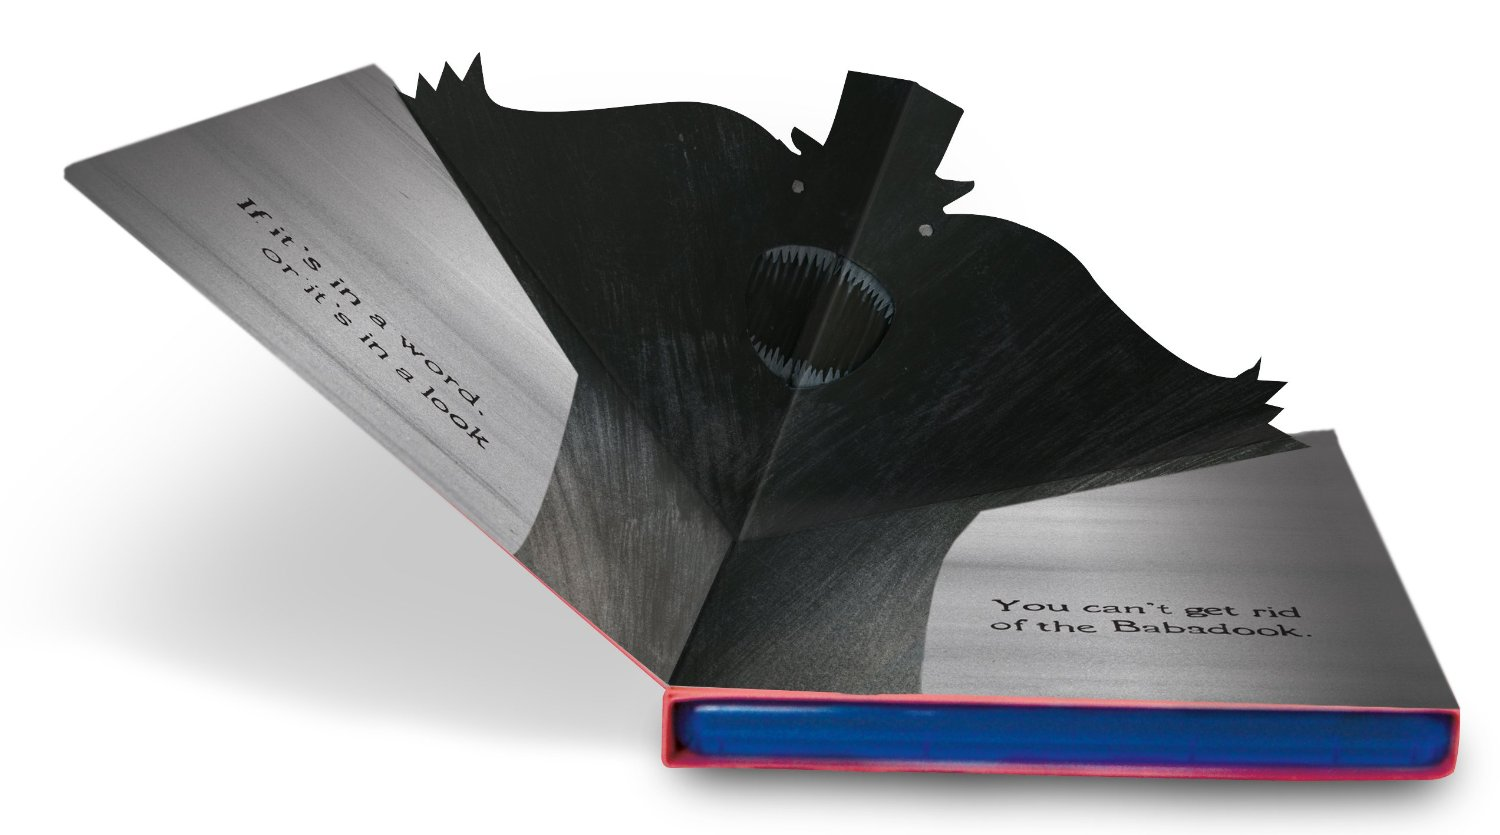 bababook - The Babadook Finds a Home at Scream Factory; Pop-Up Book Packaging!